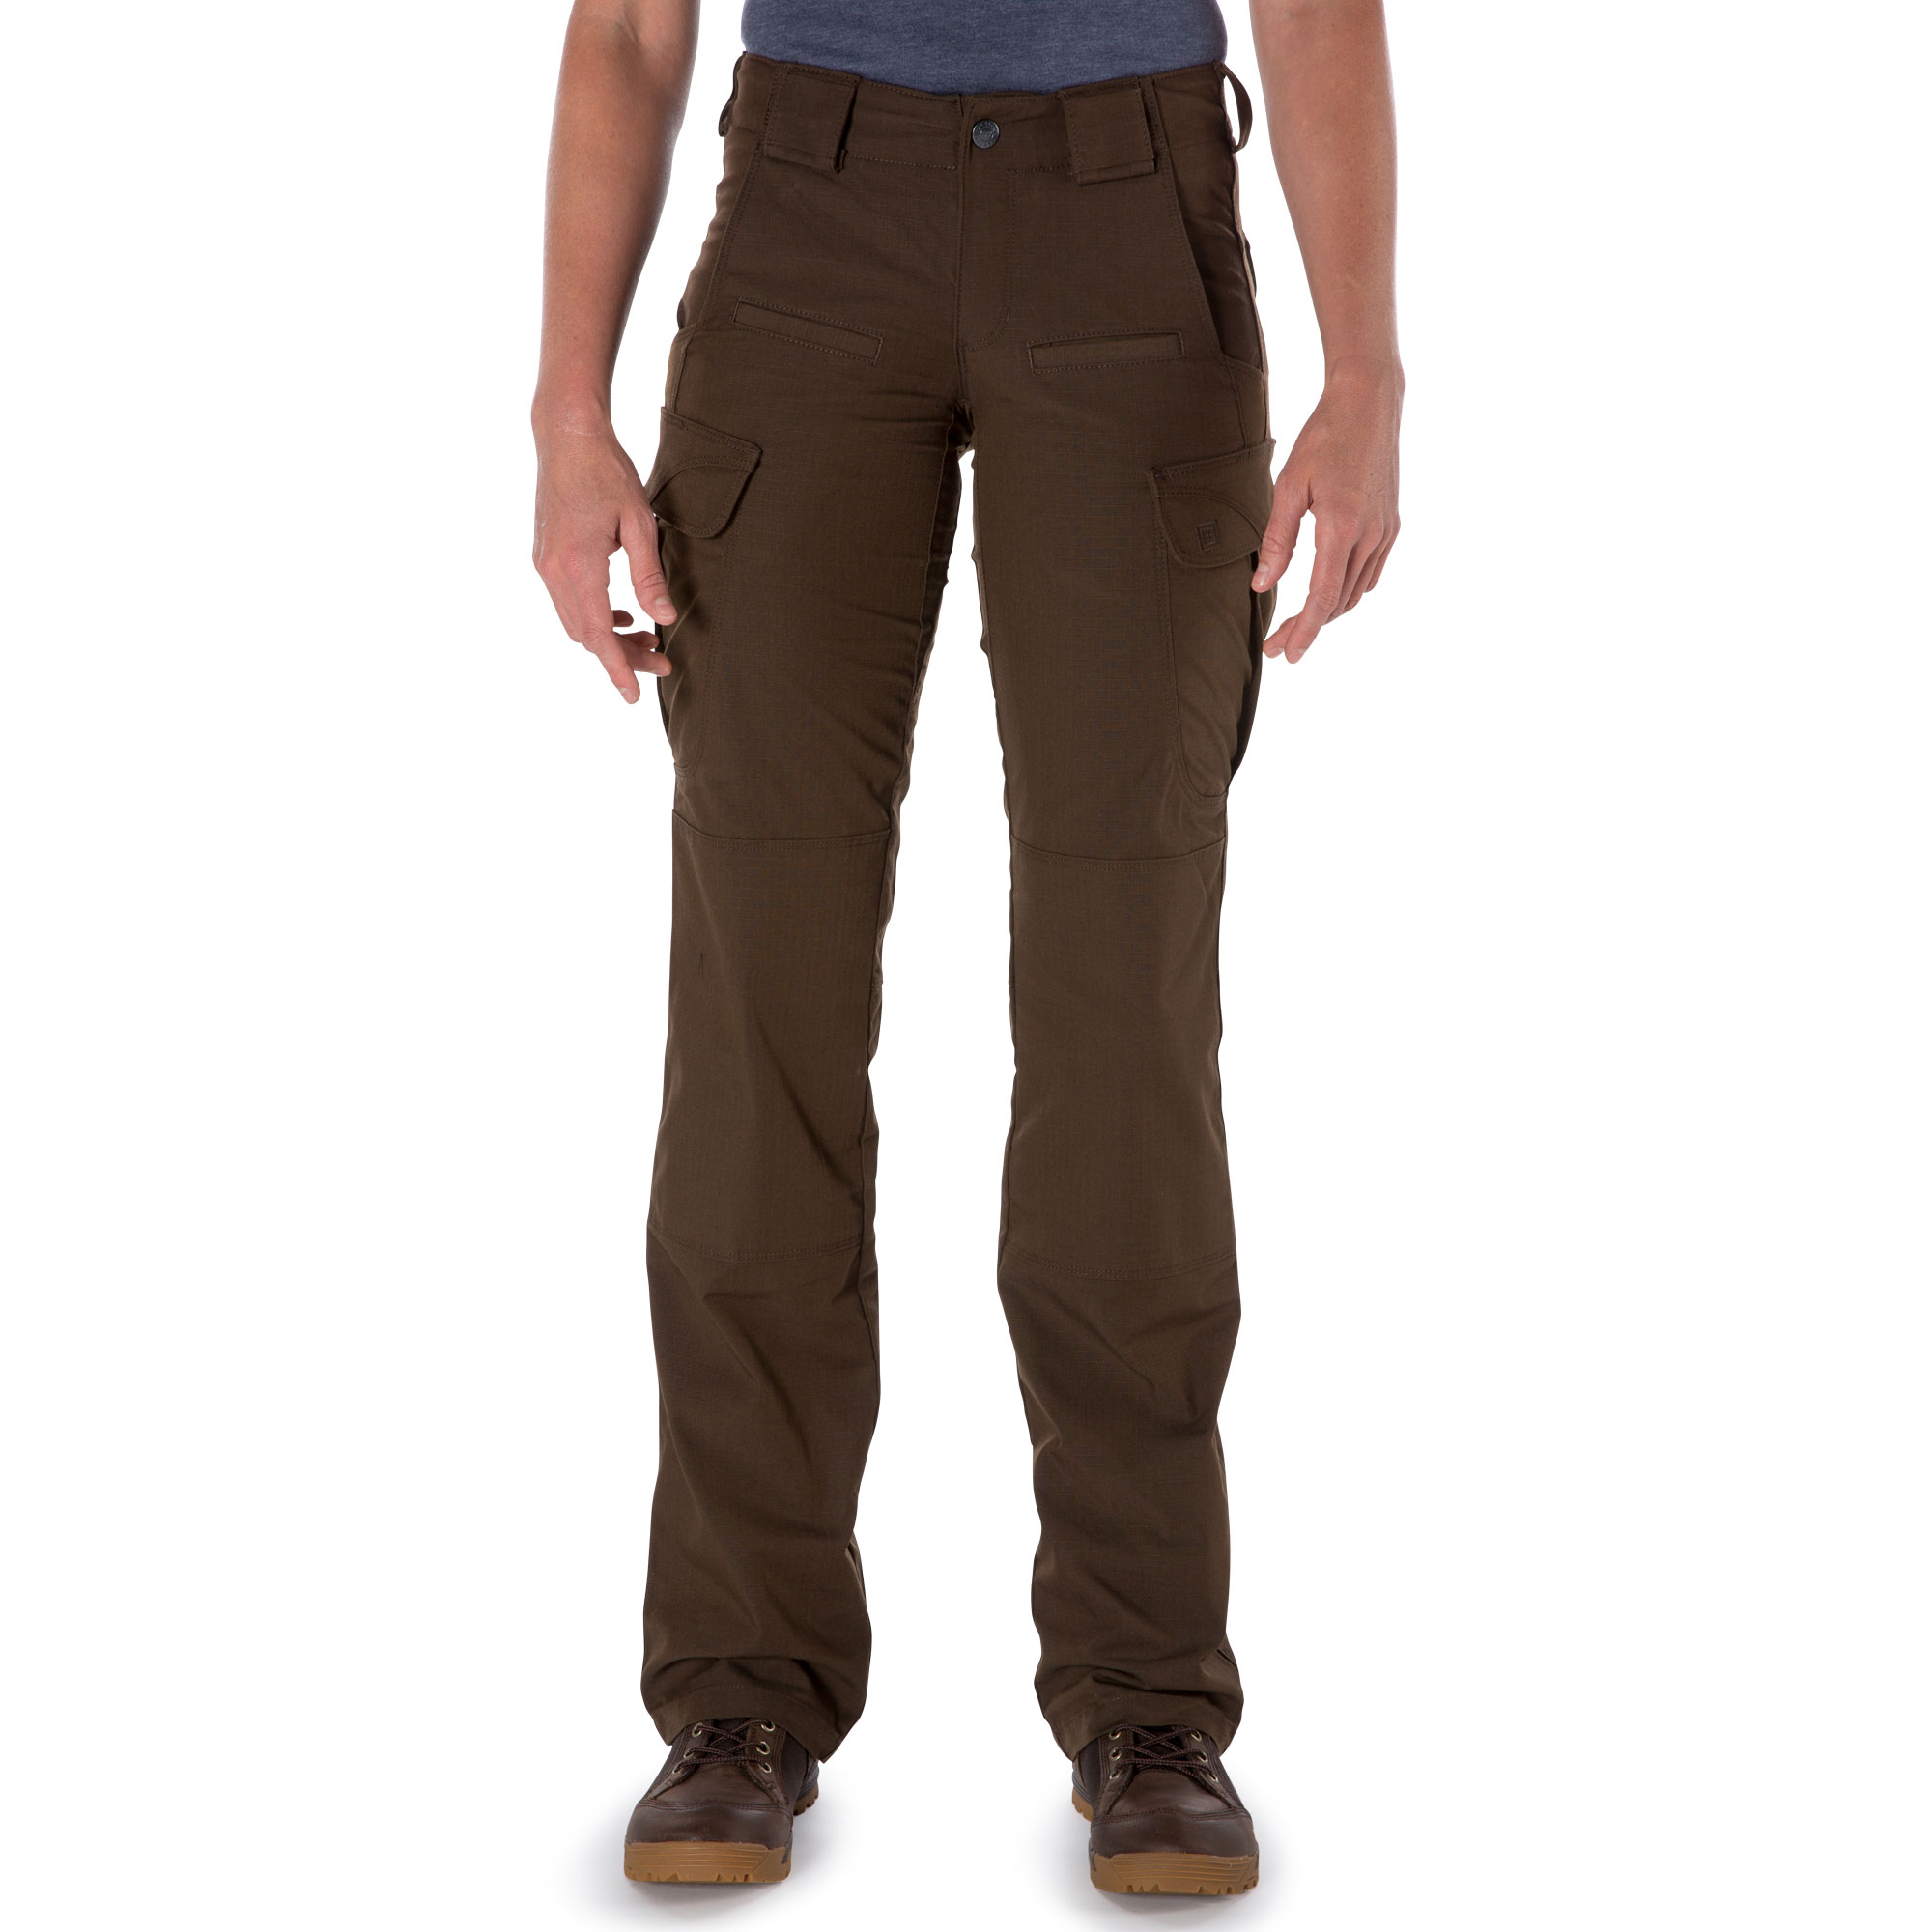 Women's 5.11 Stryke Women's Pant from 5.11 Tactical (Brown), Size 2/R (Cargo Pant)